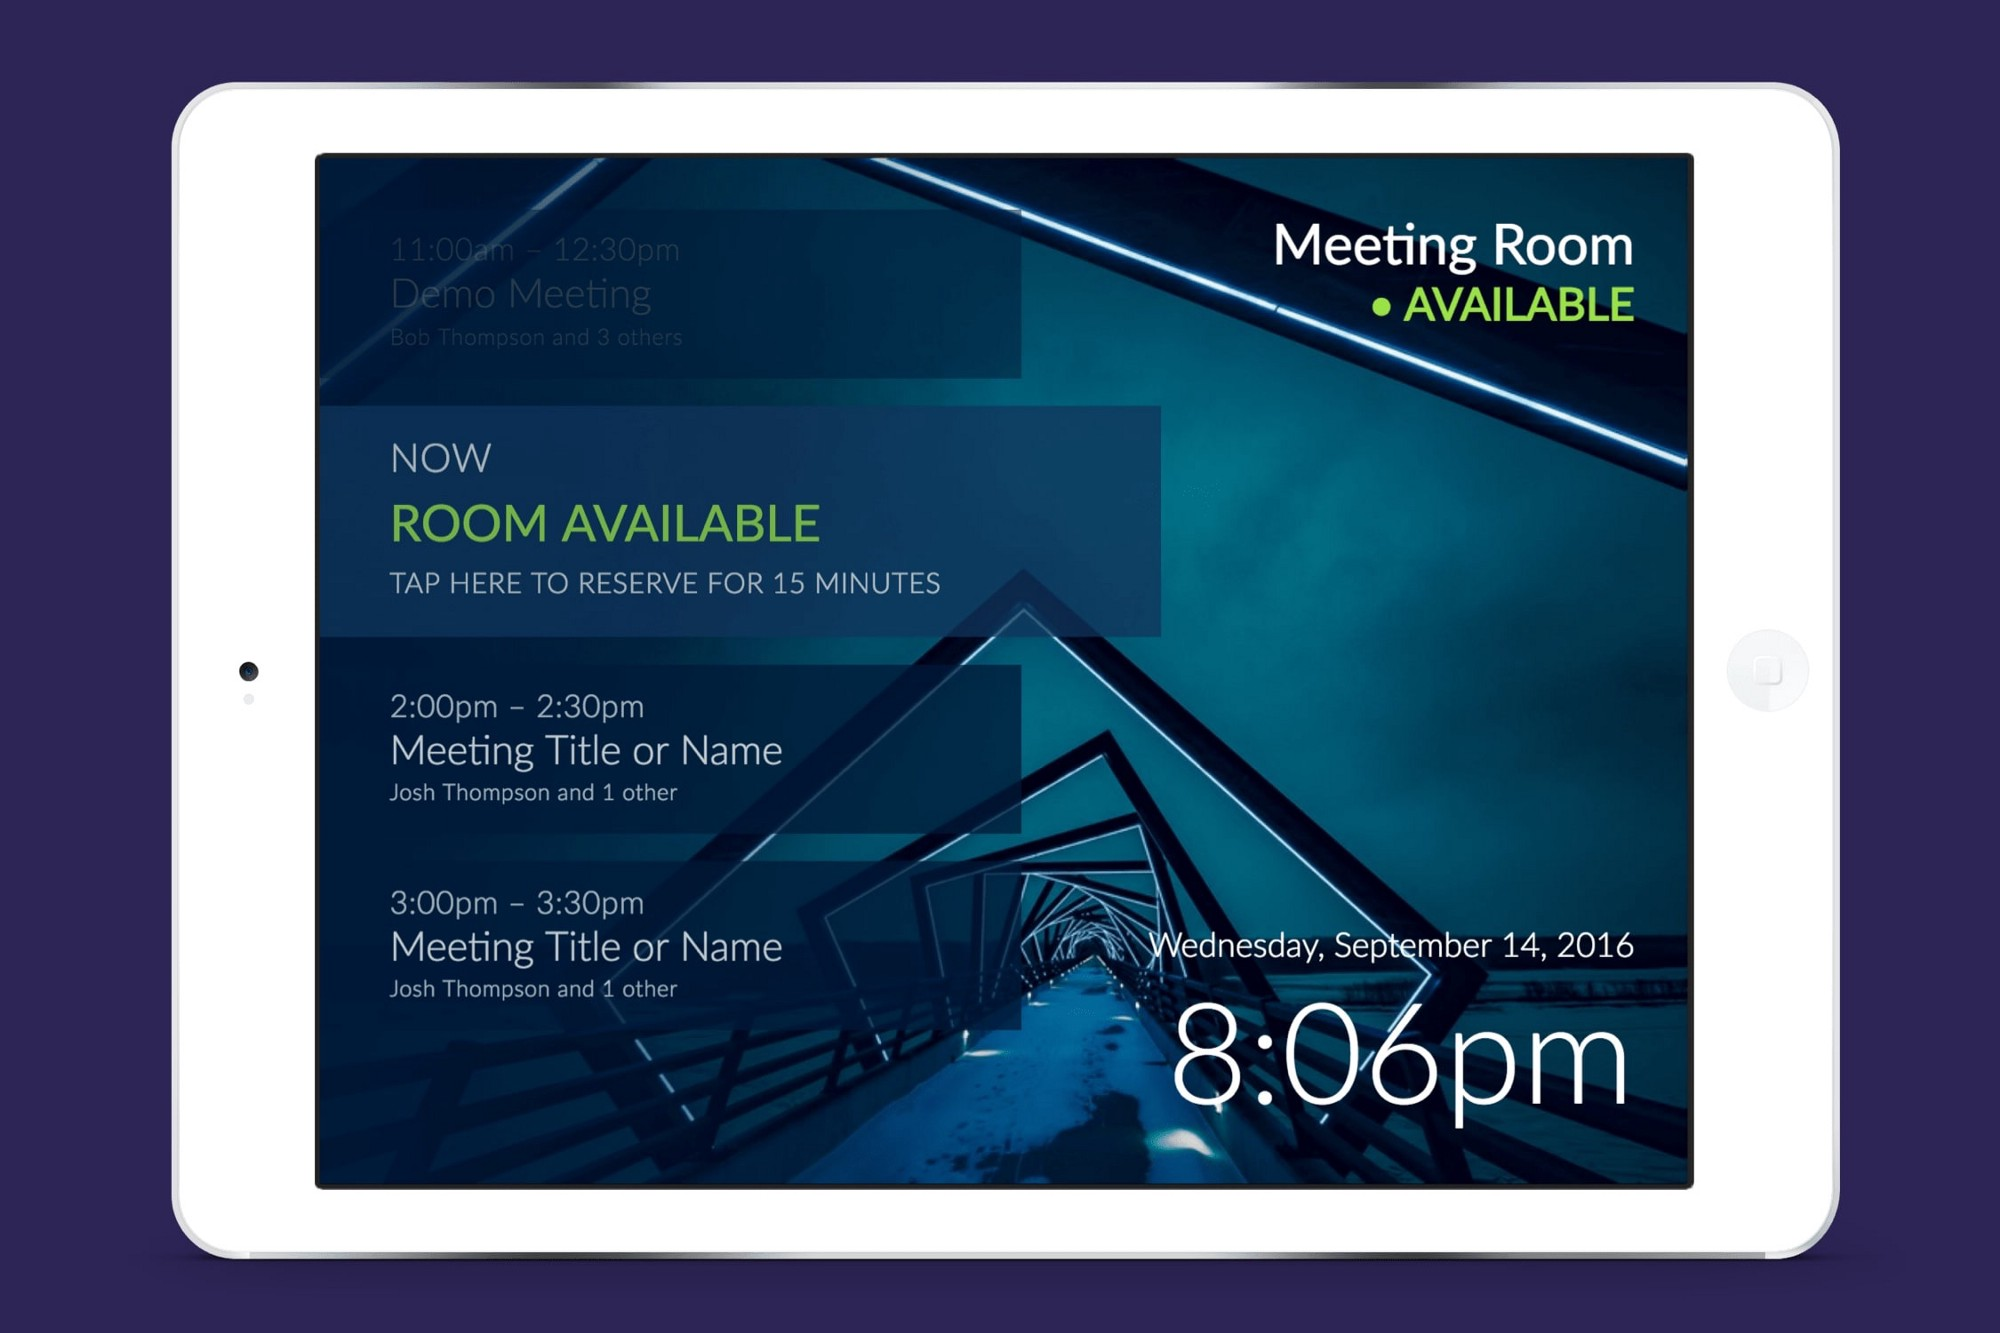 How To Add A Meeting Room Display To Office 365 In 5